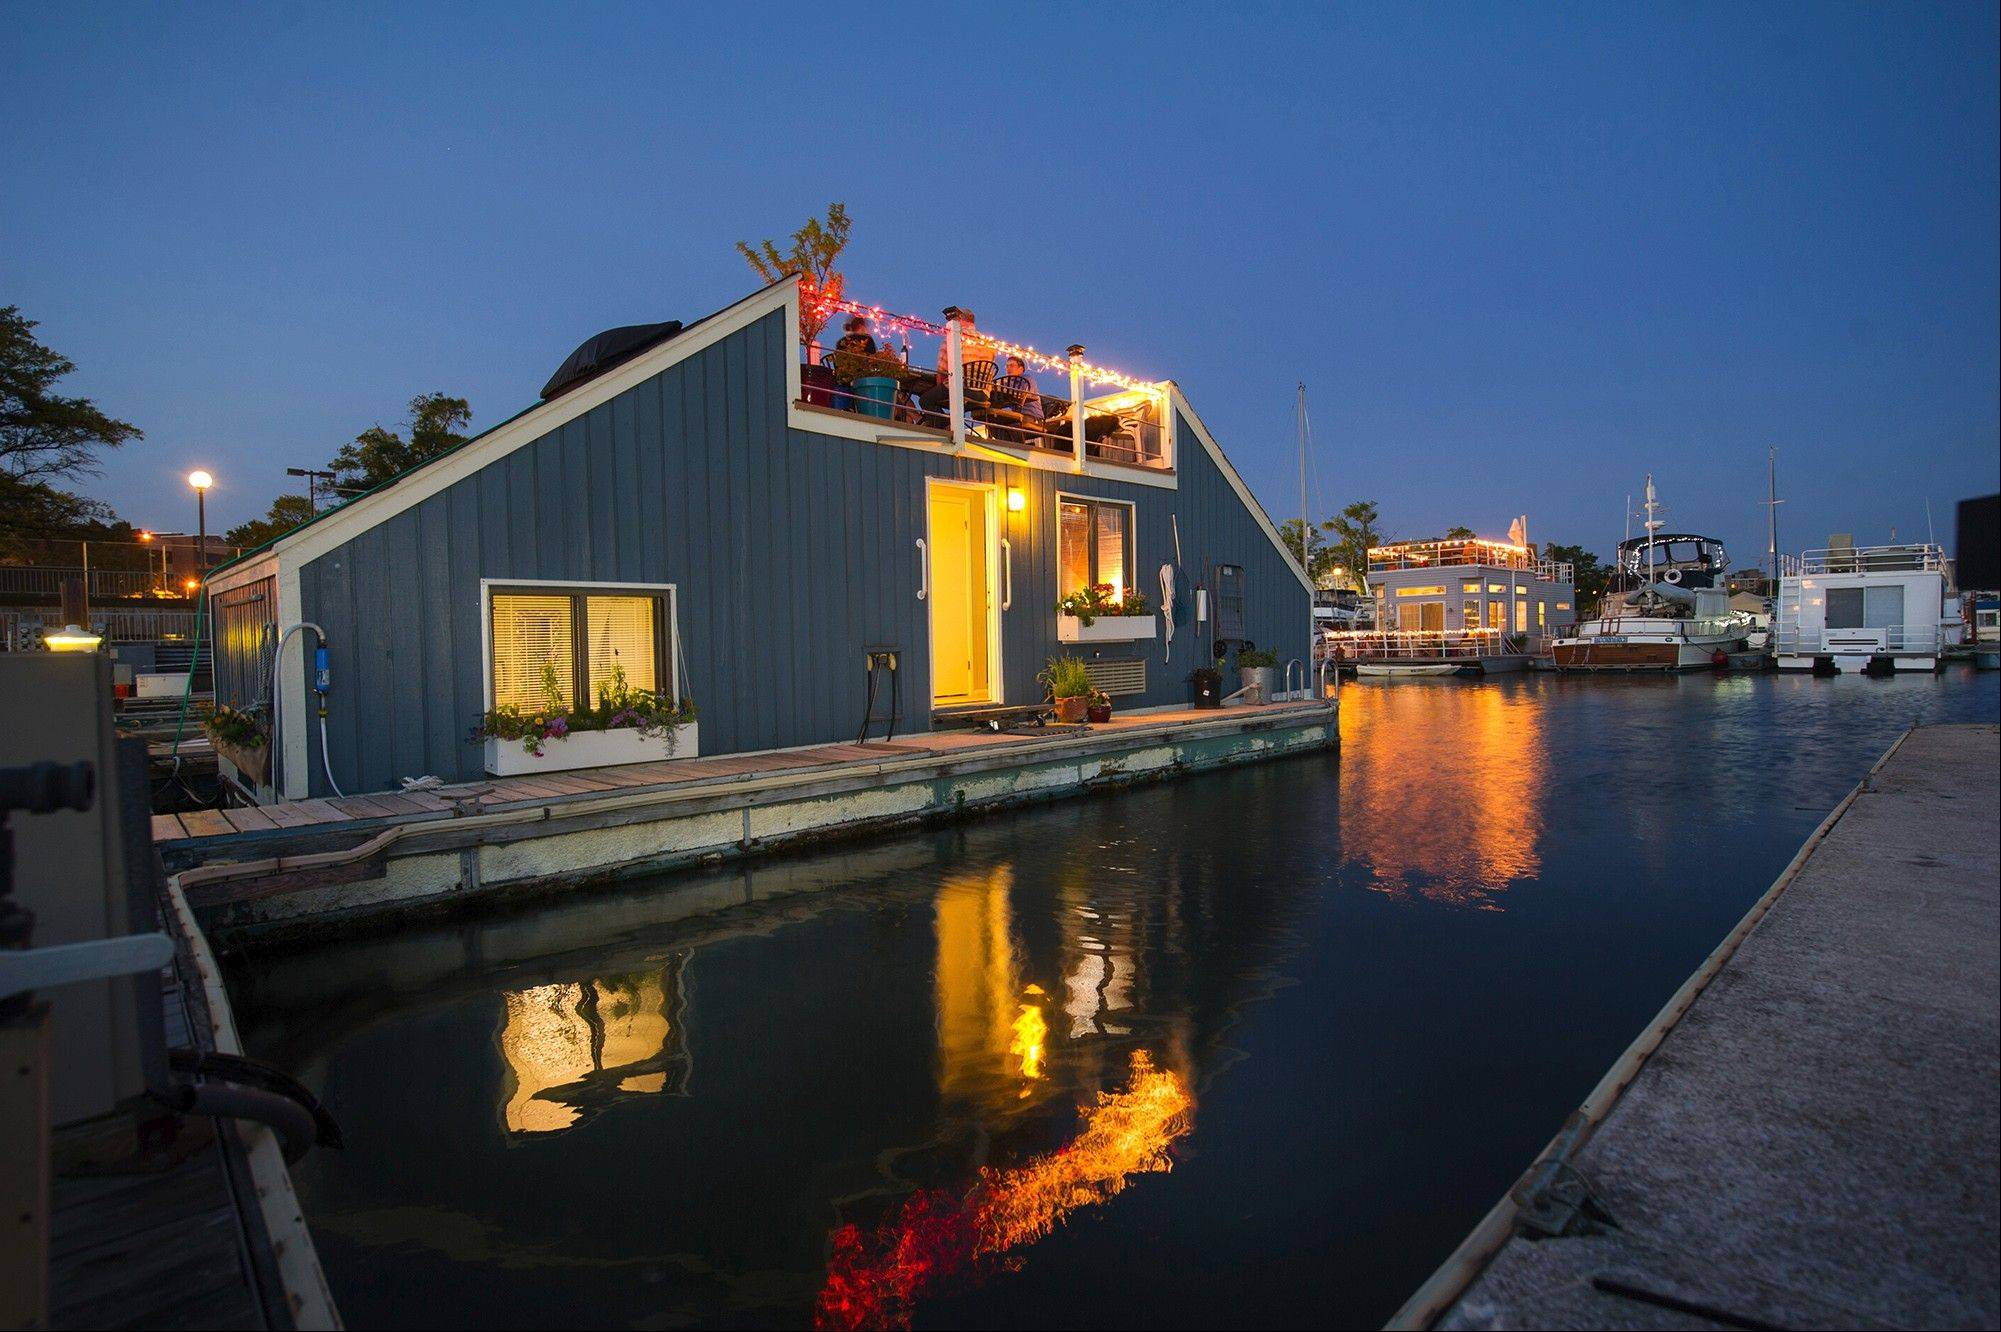 Karen Anderson's houseboat, Serendipity 2, at Gangplank Marina in Washington. The Serendipity, a barge that looks like an A-frame with the top lopped off, has less than 500 square feet.